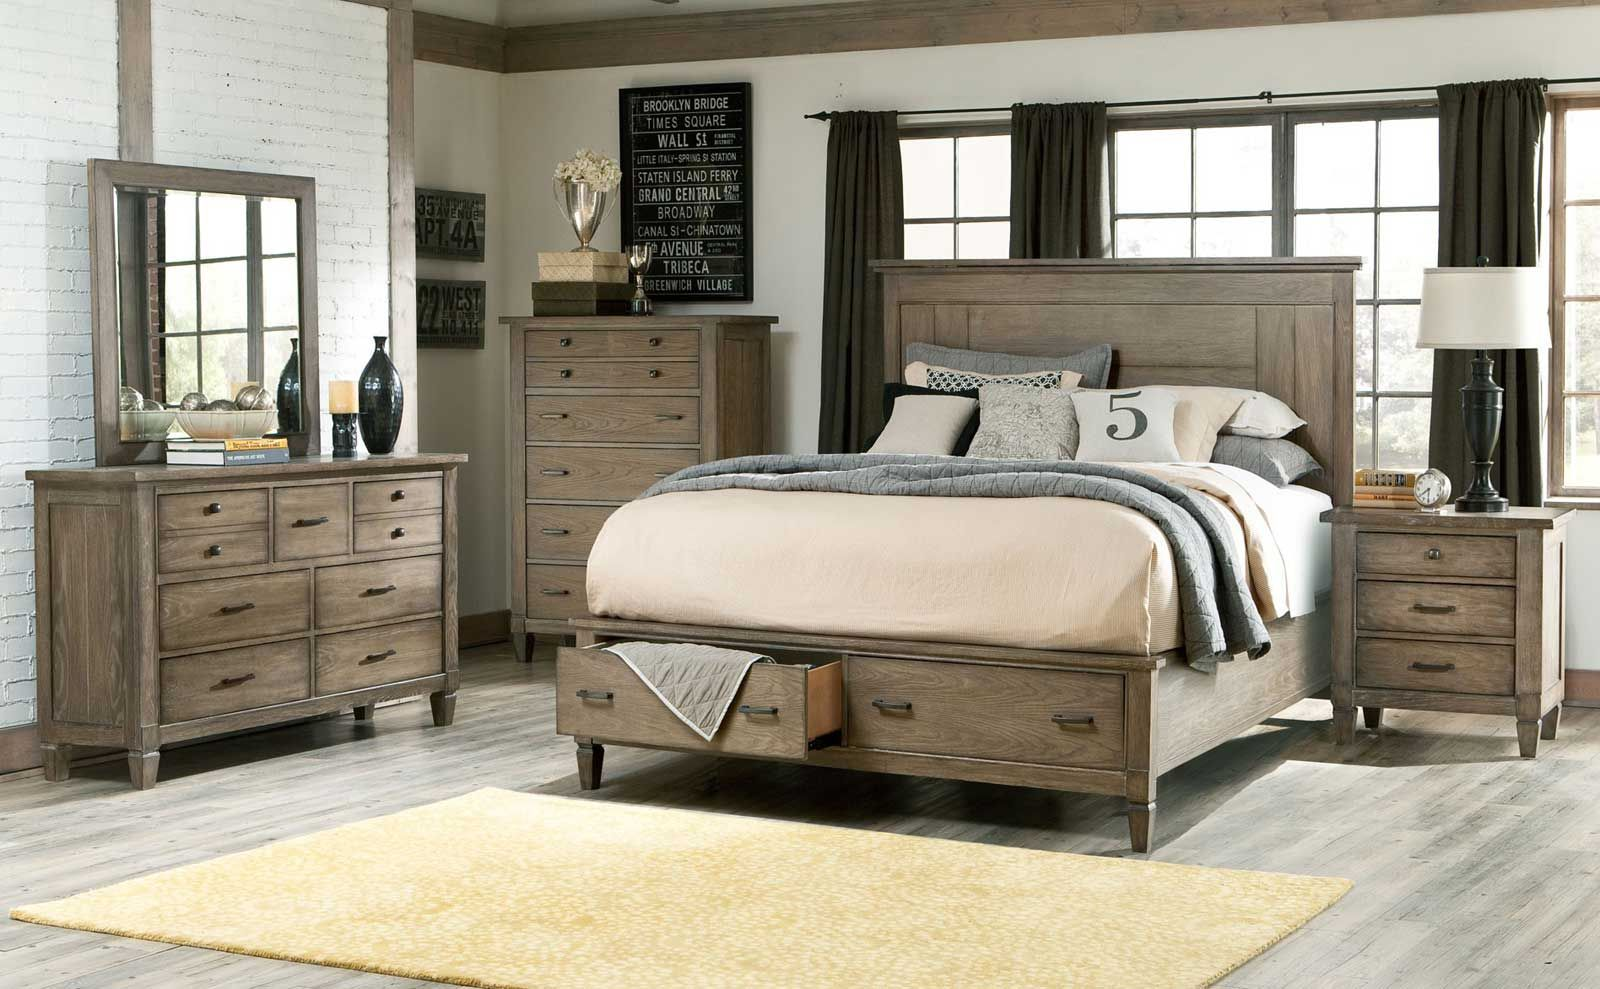 Image result for wood king size bedroom sets. Image result for wood king size bedroom sets   Farm house master